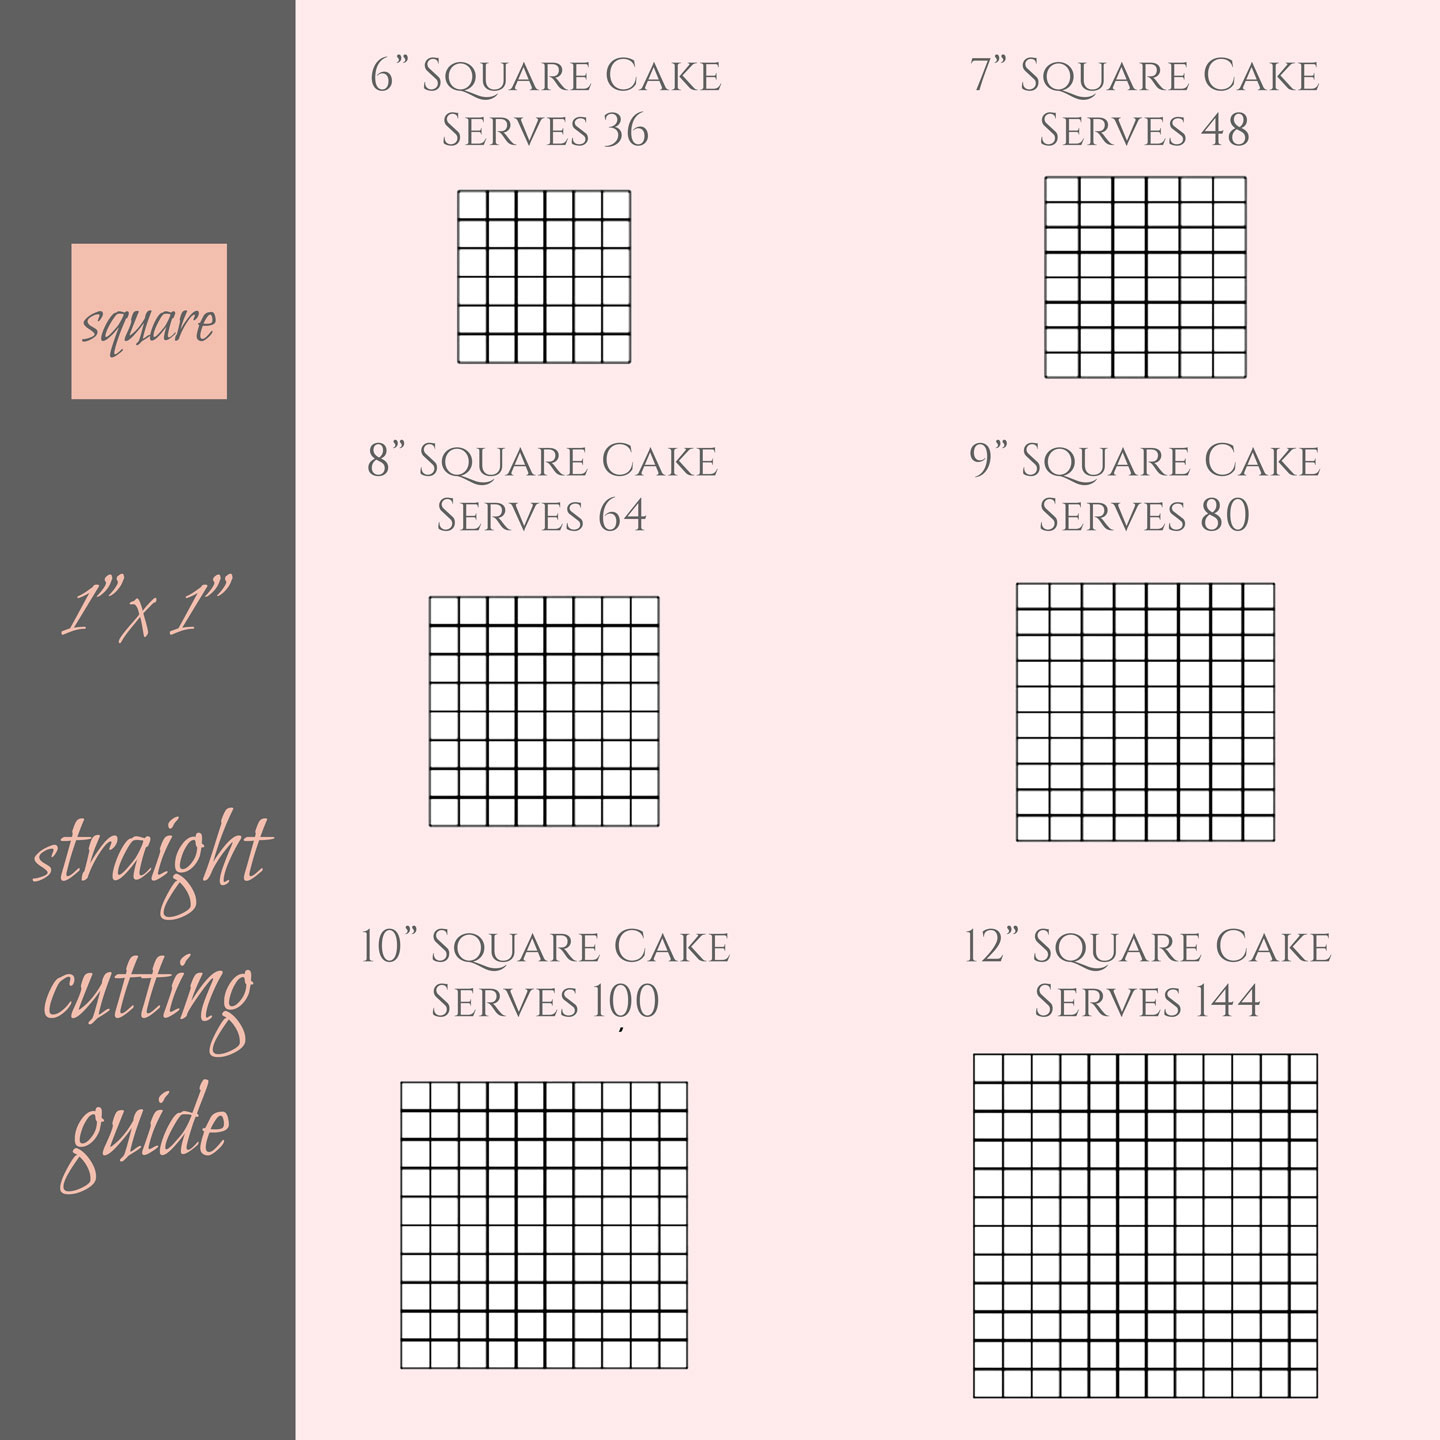 Cake cutting guide for square cake coffee portions